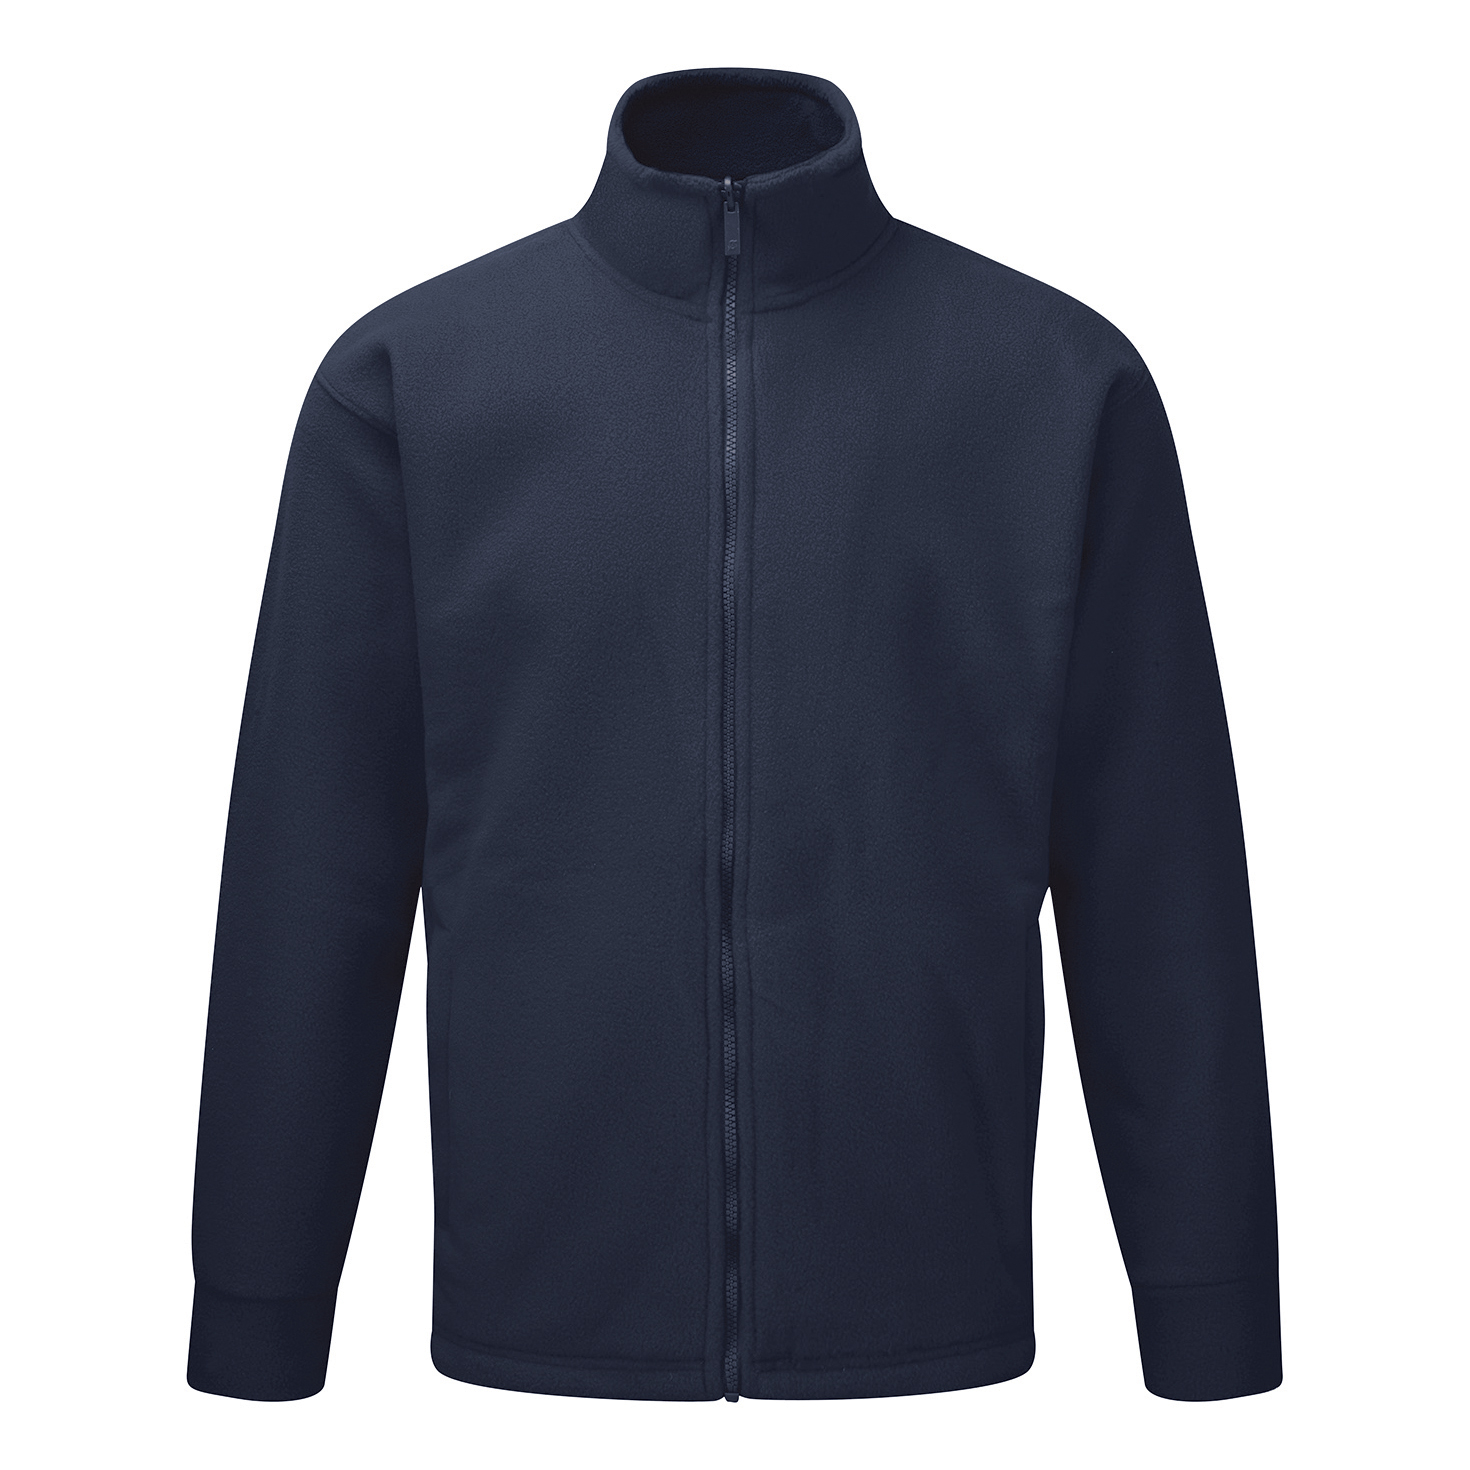 Classic Fleece Jacket Elasticated Cuffs Full Zip Front 4XL Navy Blue Ref FLJN4XL *1-3 Days Lead Time*